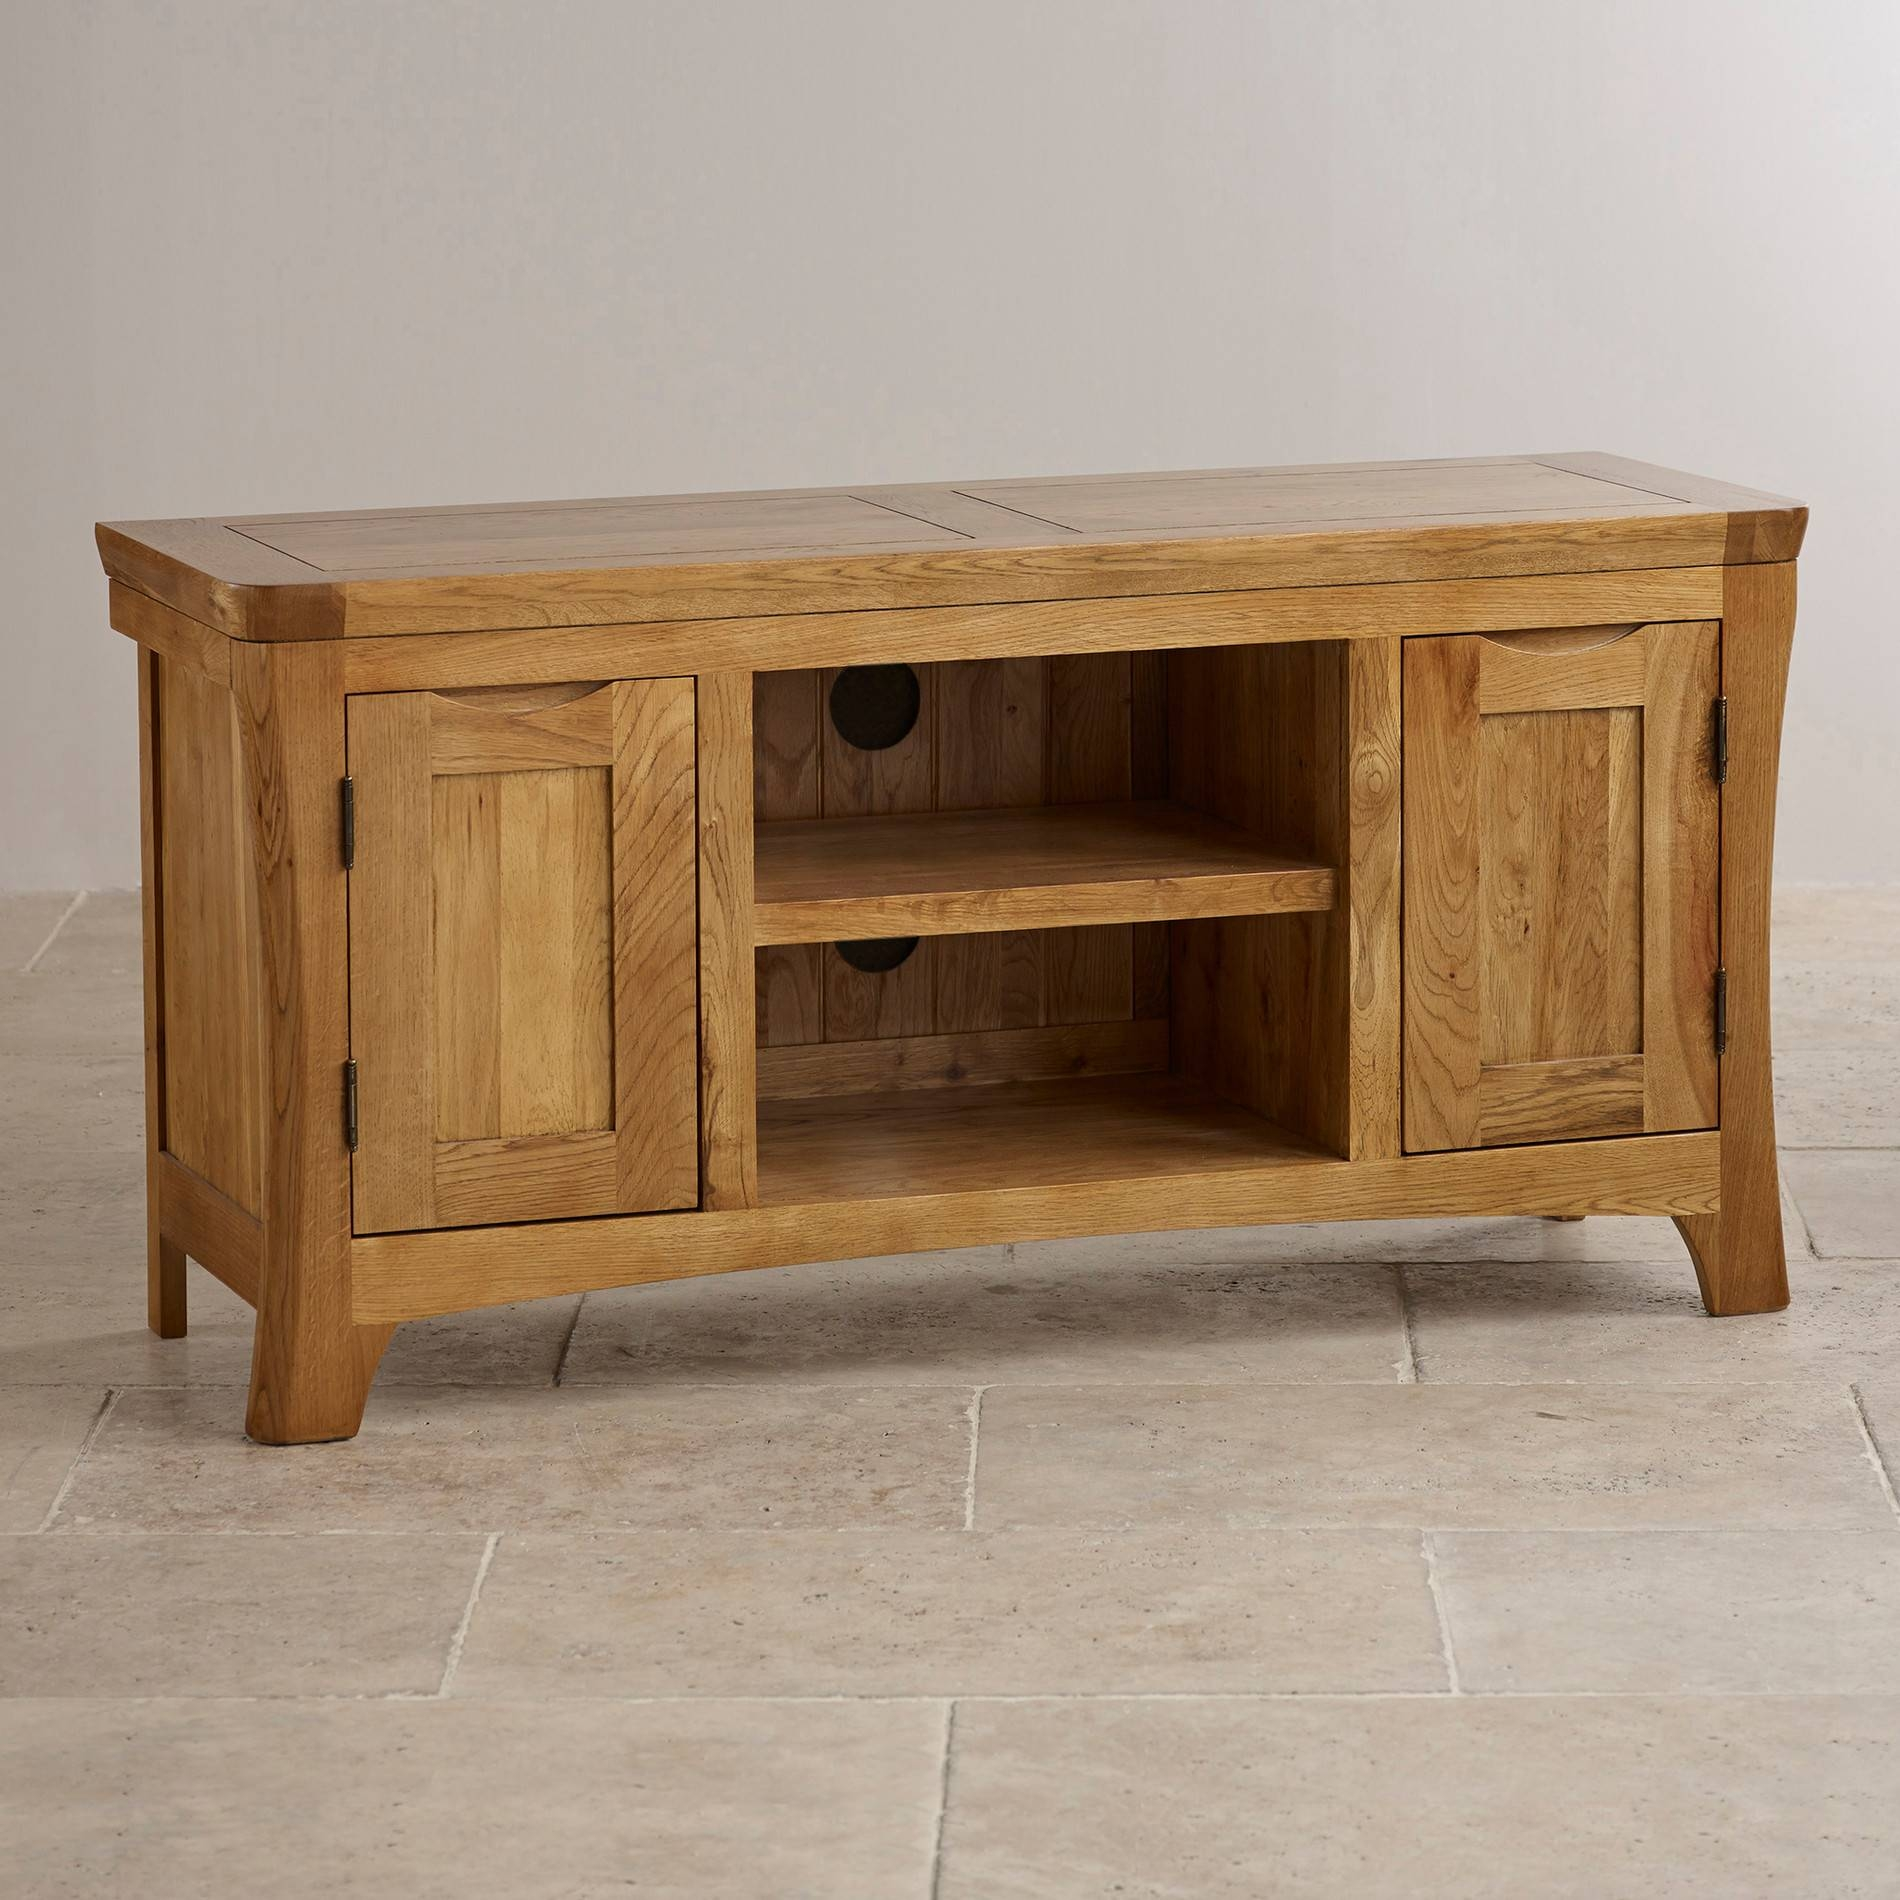 Orrick Wide Tv Cabinet In Rustic Solid Oak | Oak Furniture Land Regarding Tv Stands In Oak (View 13 of 15)